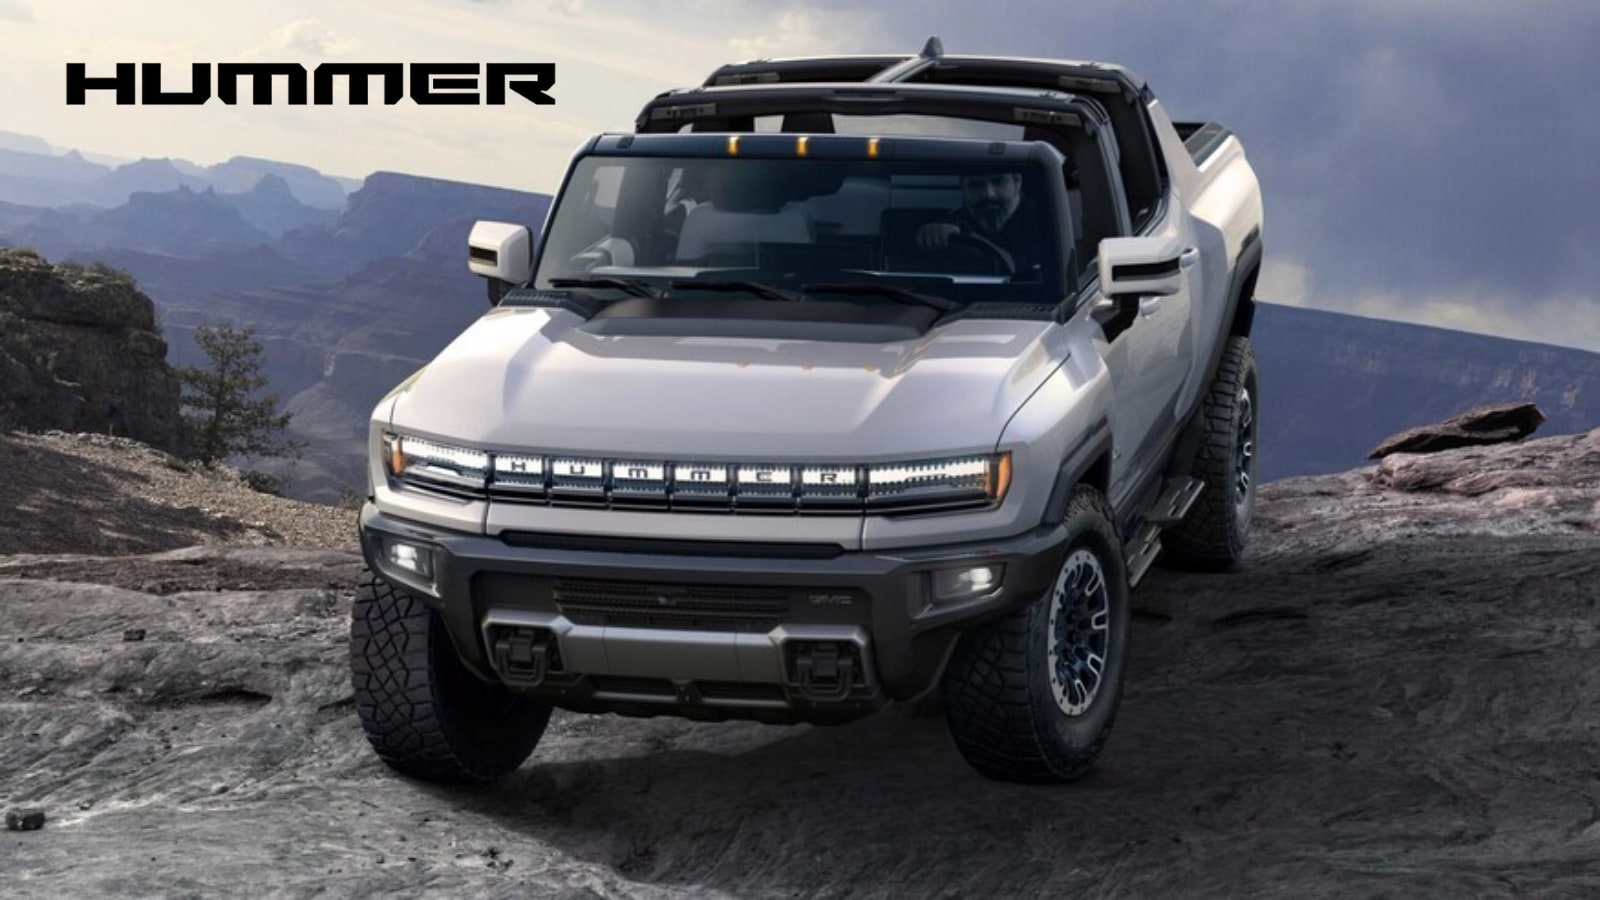 THE WORLD'S FIRST ALL-ELECTRIC SUPERTRUCK